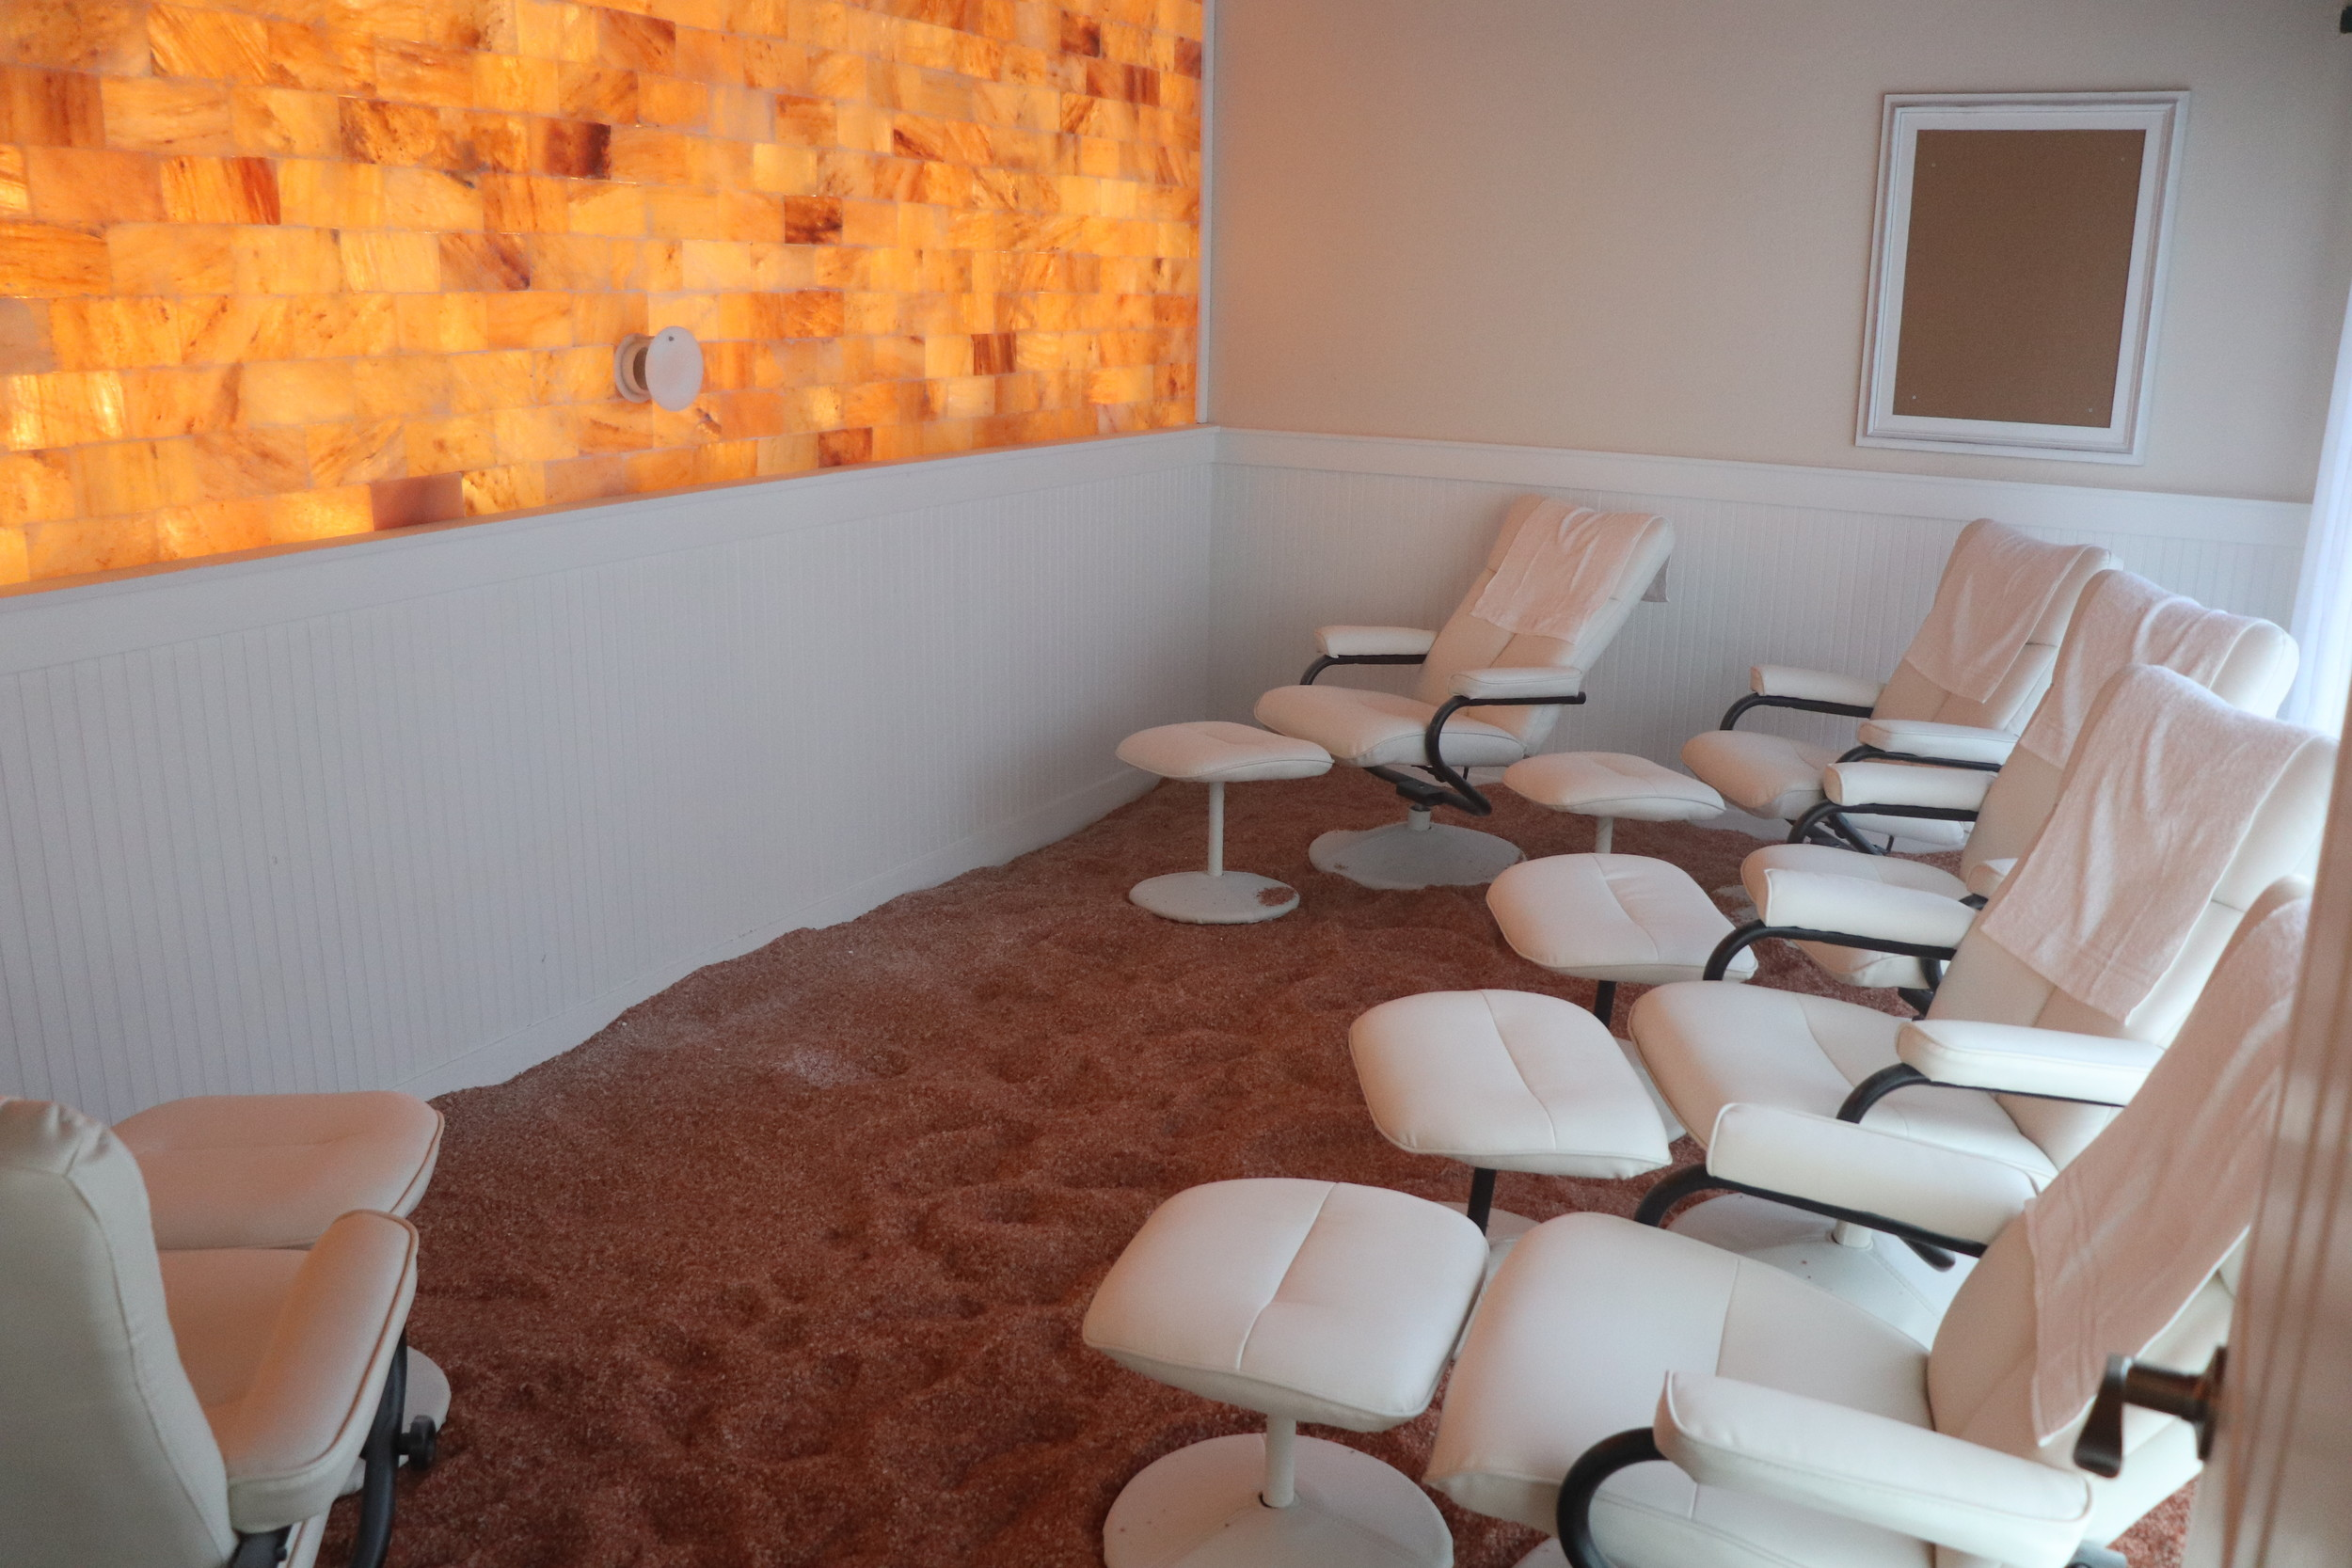 Guests relax as micro-particles of pharmaceutical grade pink Himalayan salt floats through the room.